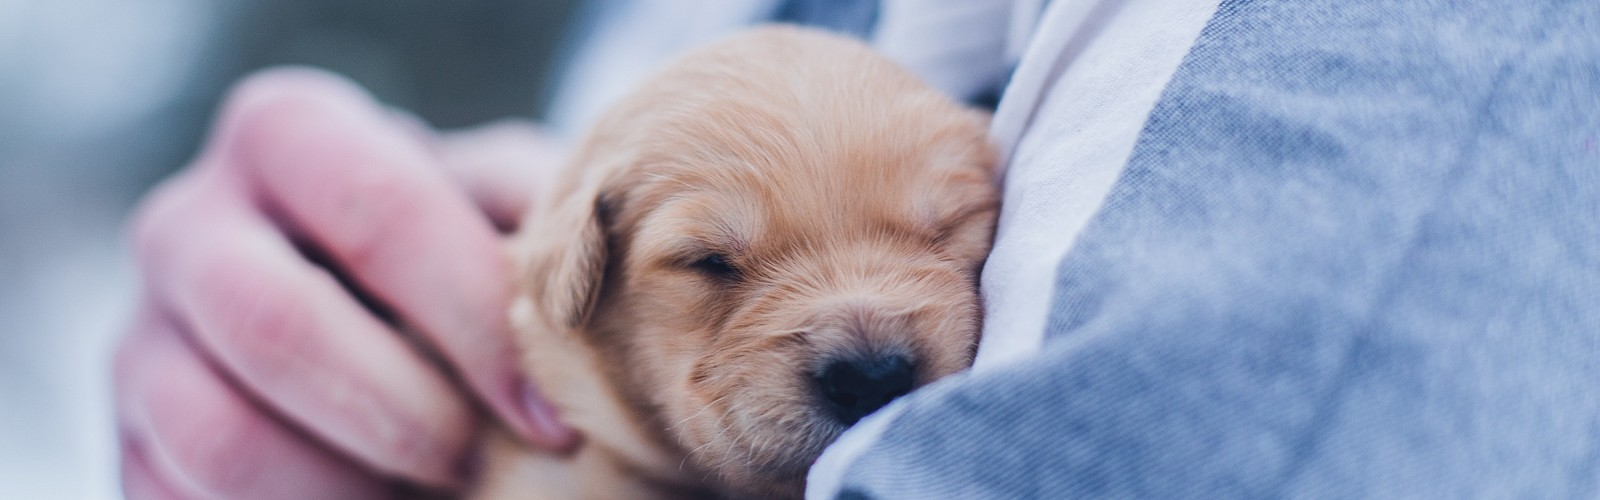 sleeping puppy cradled in arms (image: Lydia torrey on Unsplash)